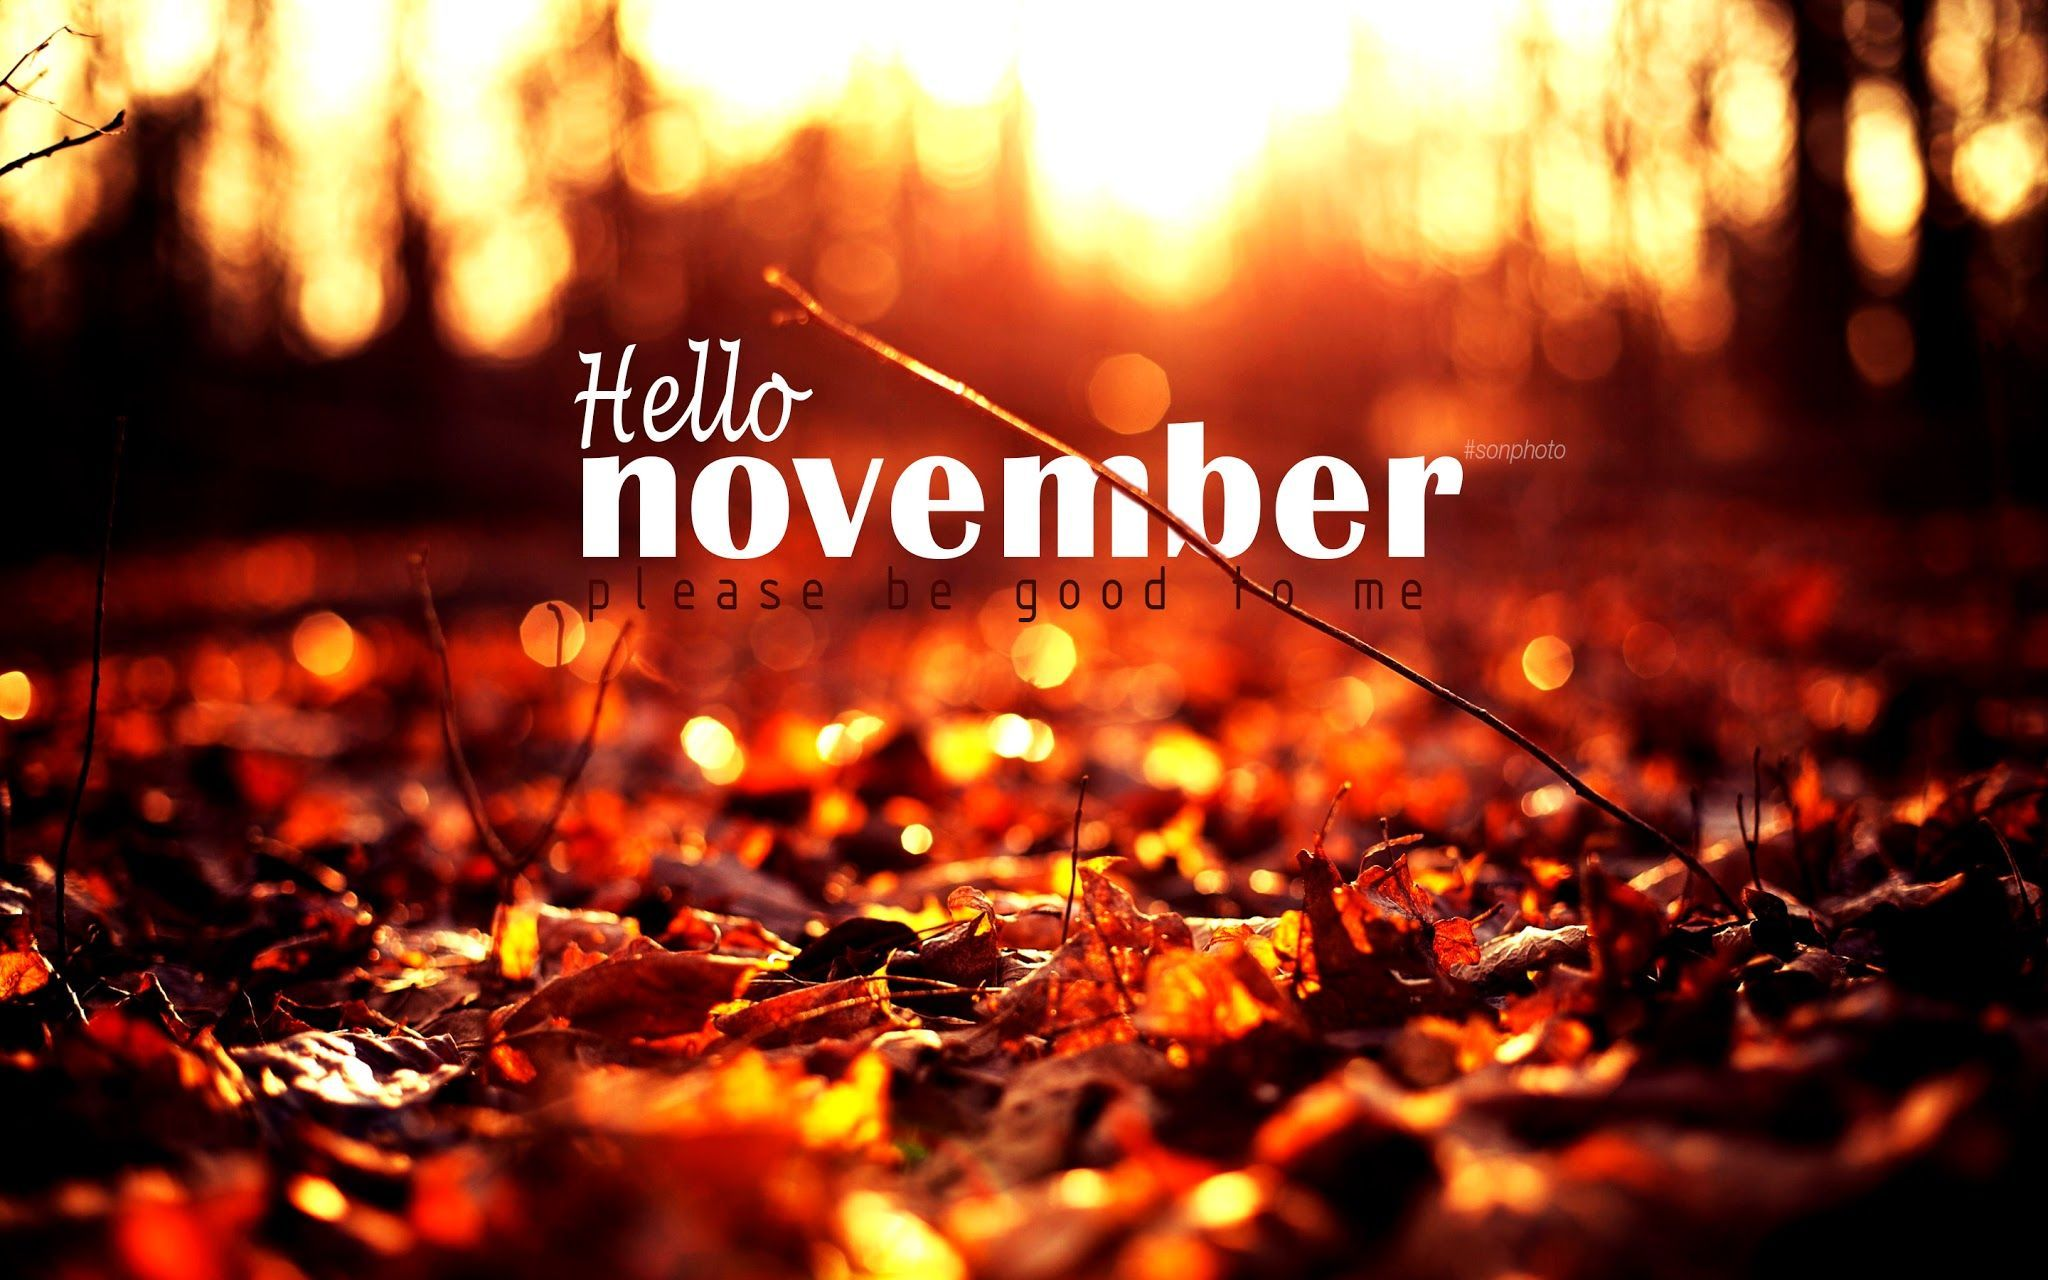 2048x1280 hello november wallpaper | Best 40 November Images and ...